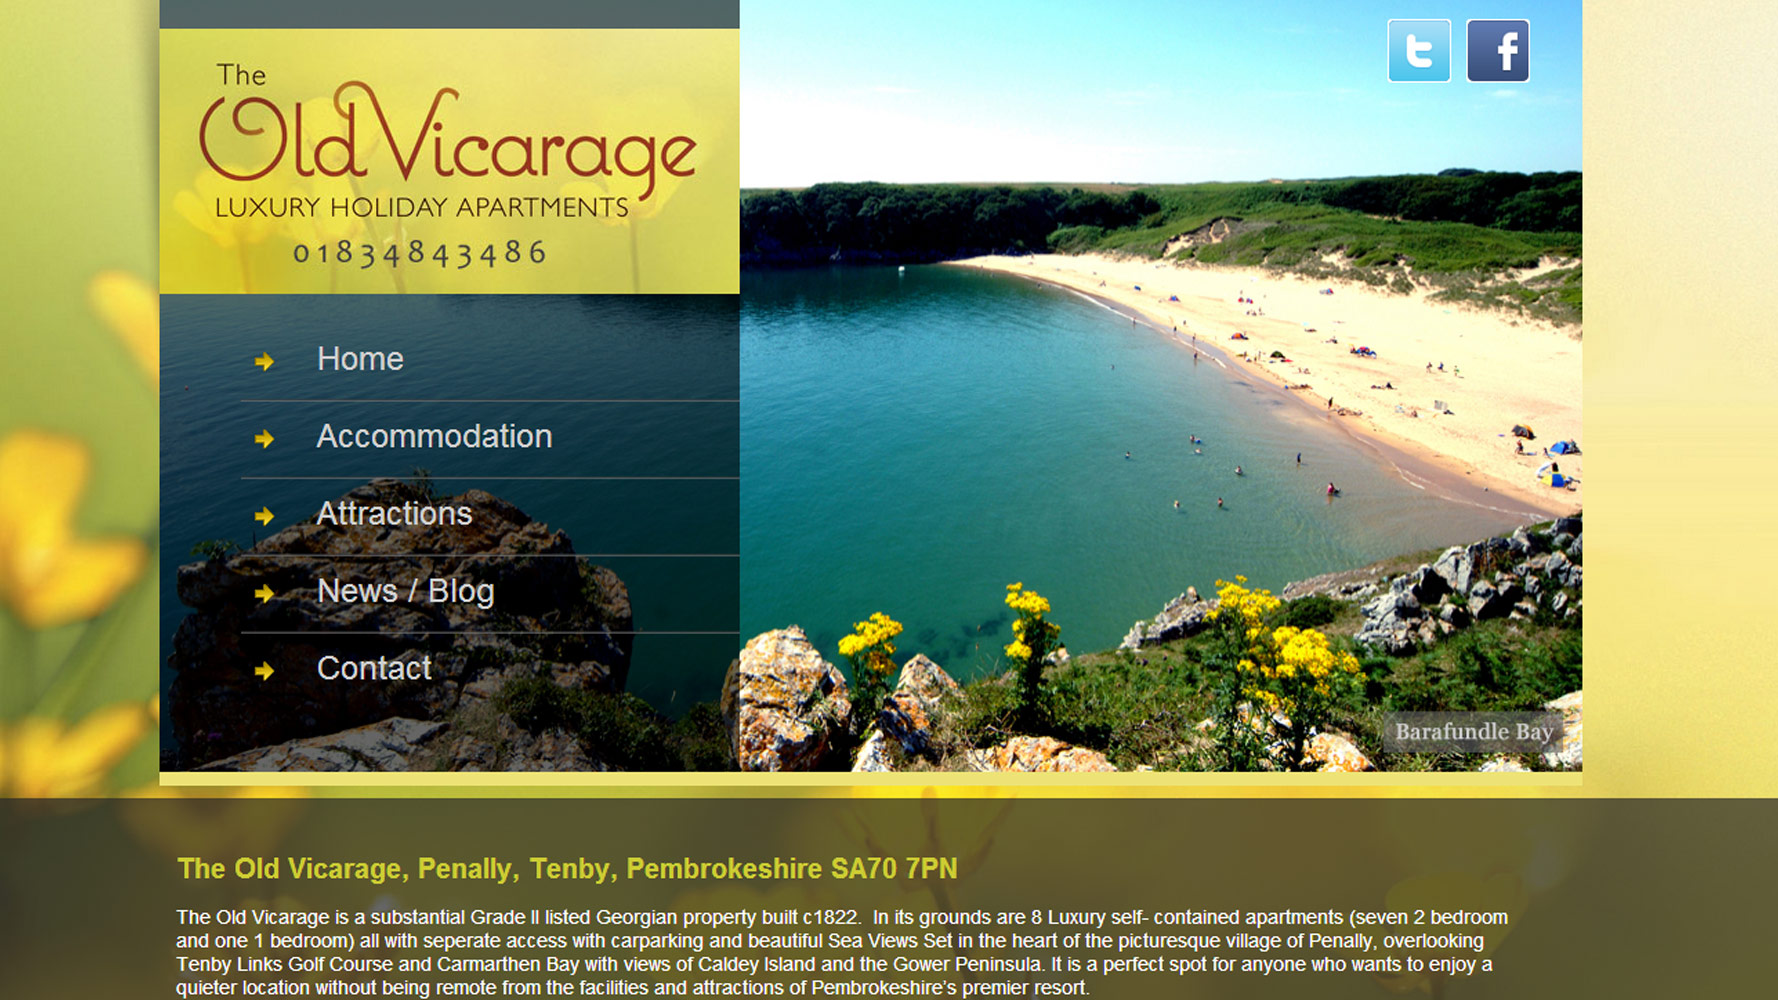 The Old Vicarage Web Design by Web Adept